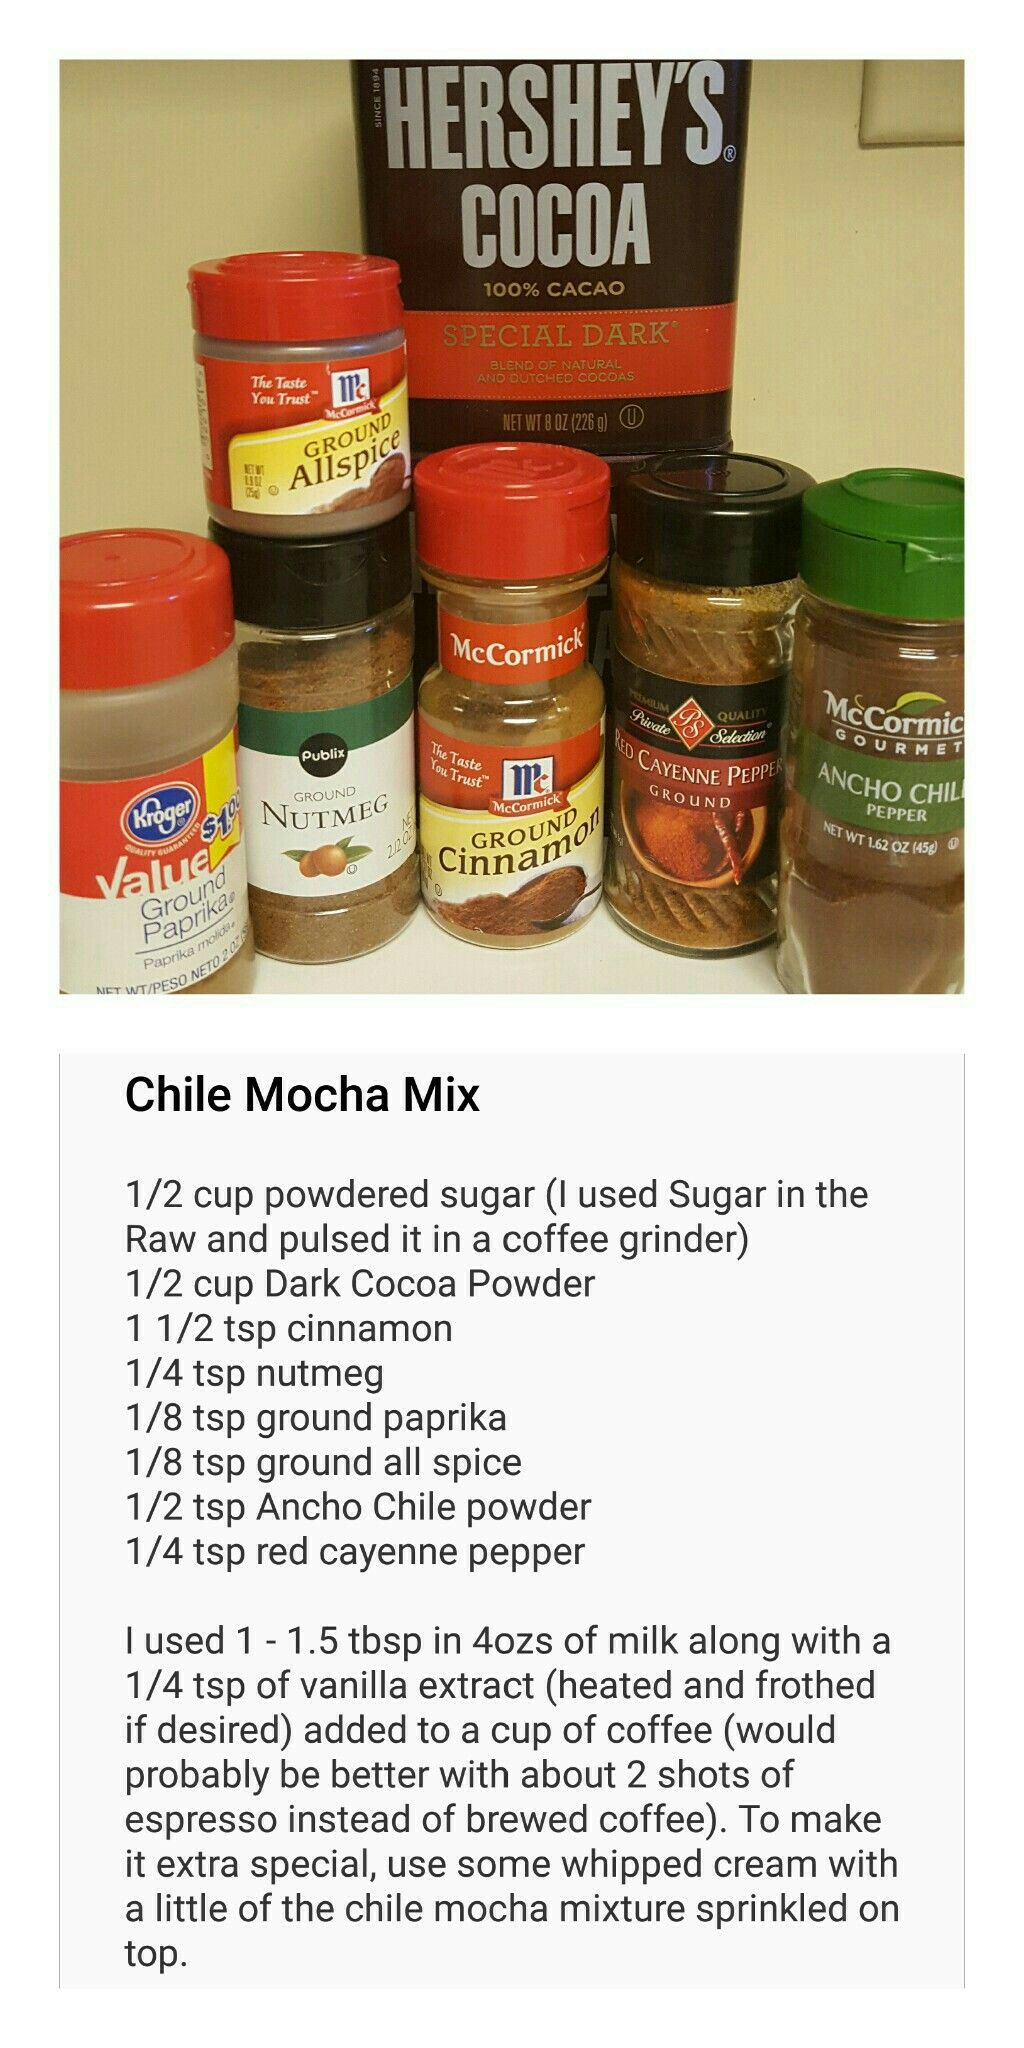 Chile Mocha Mix I loved the sound of Starbucks' newest